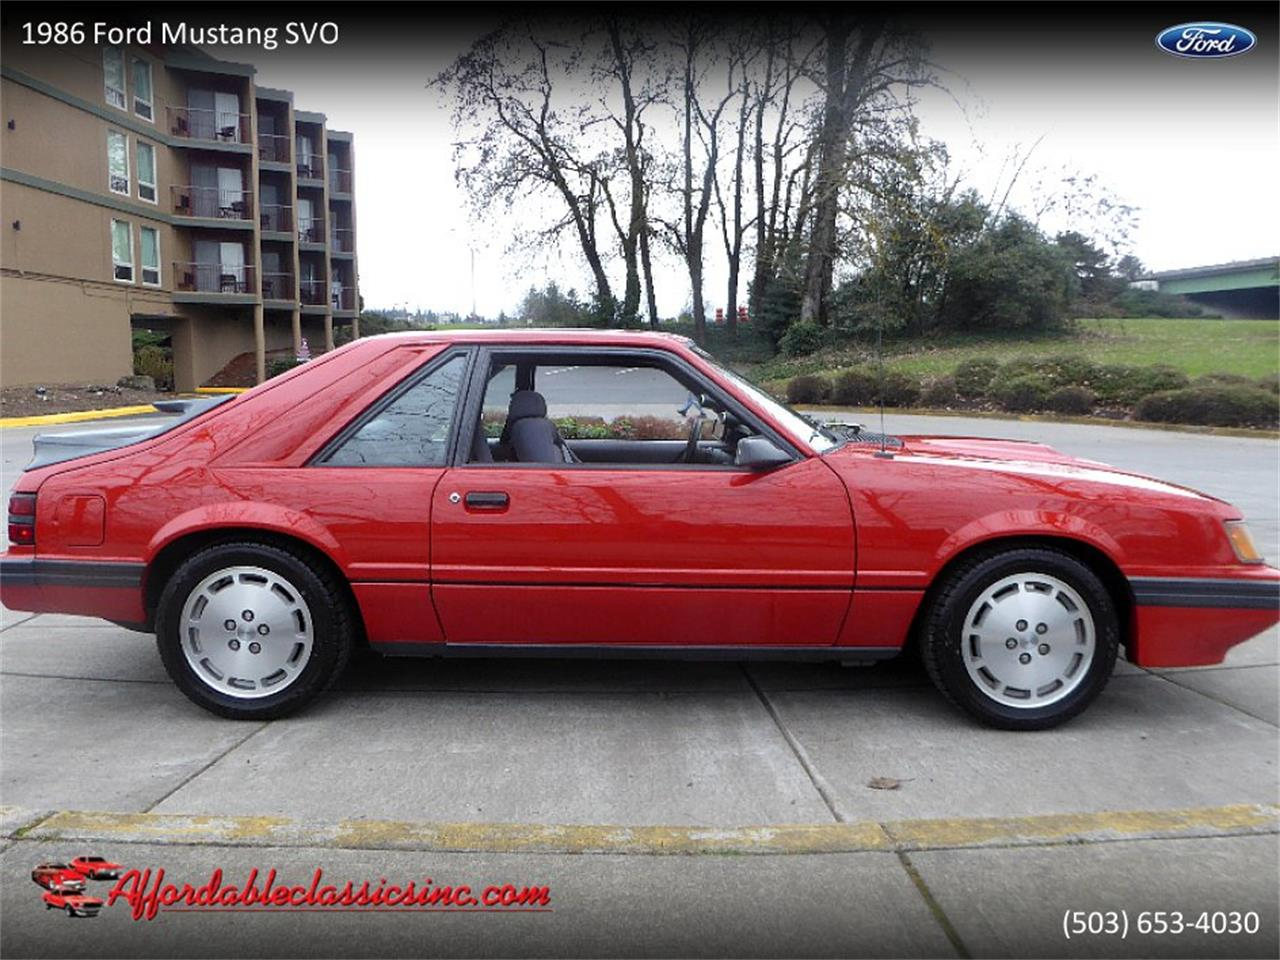 Large Picture of '86 Mustang SVO - PUOE